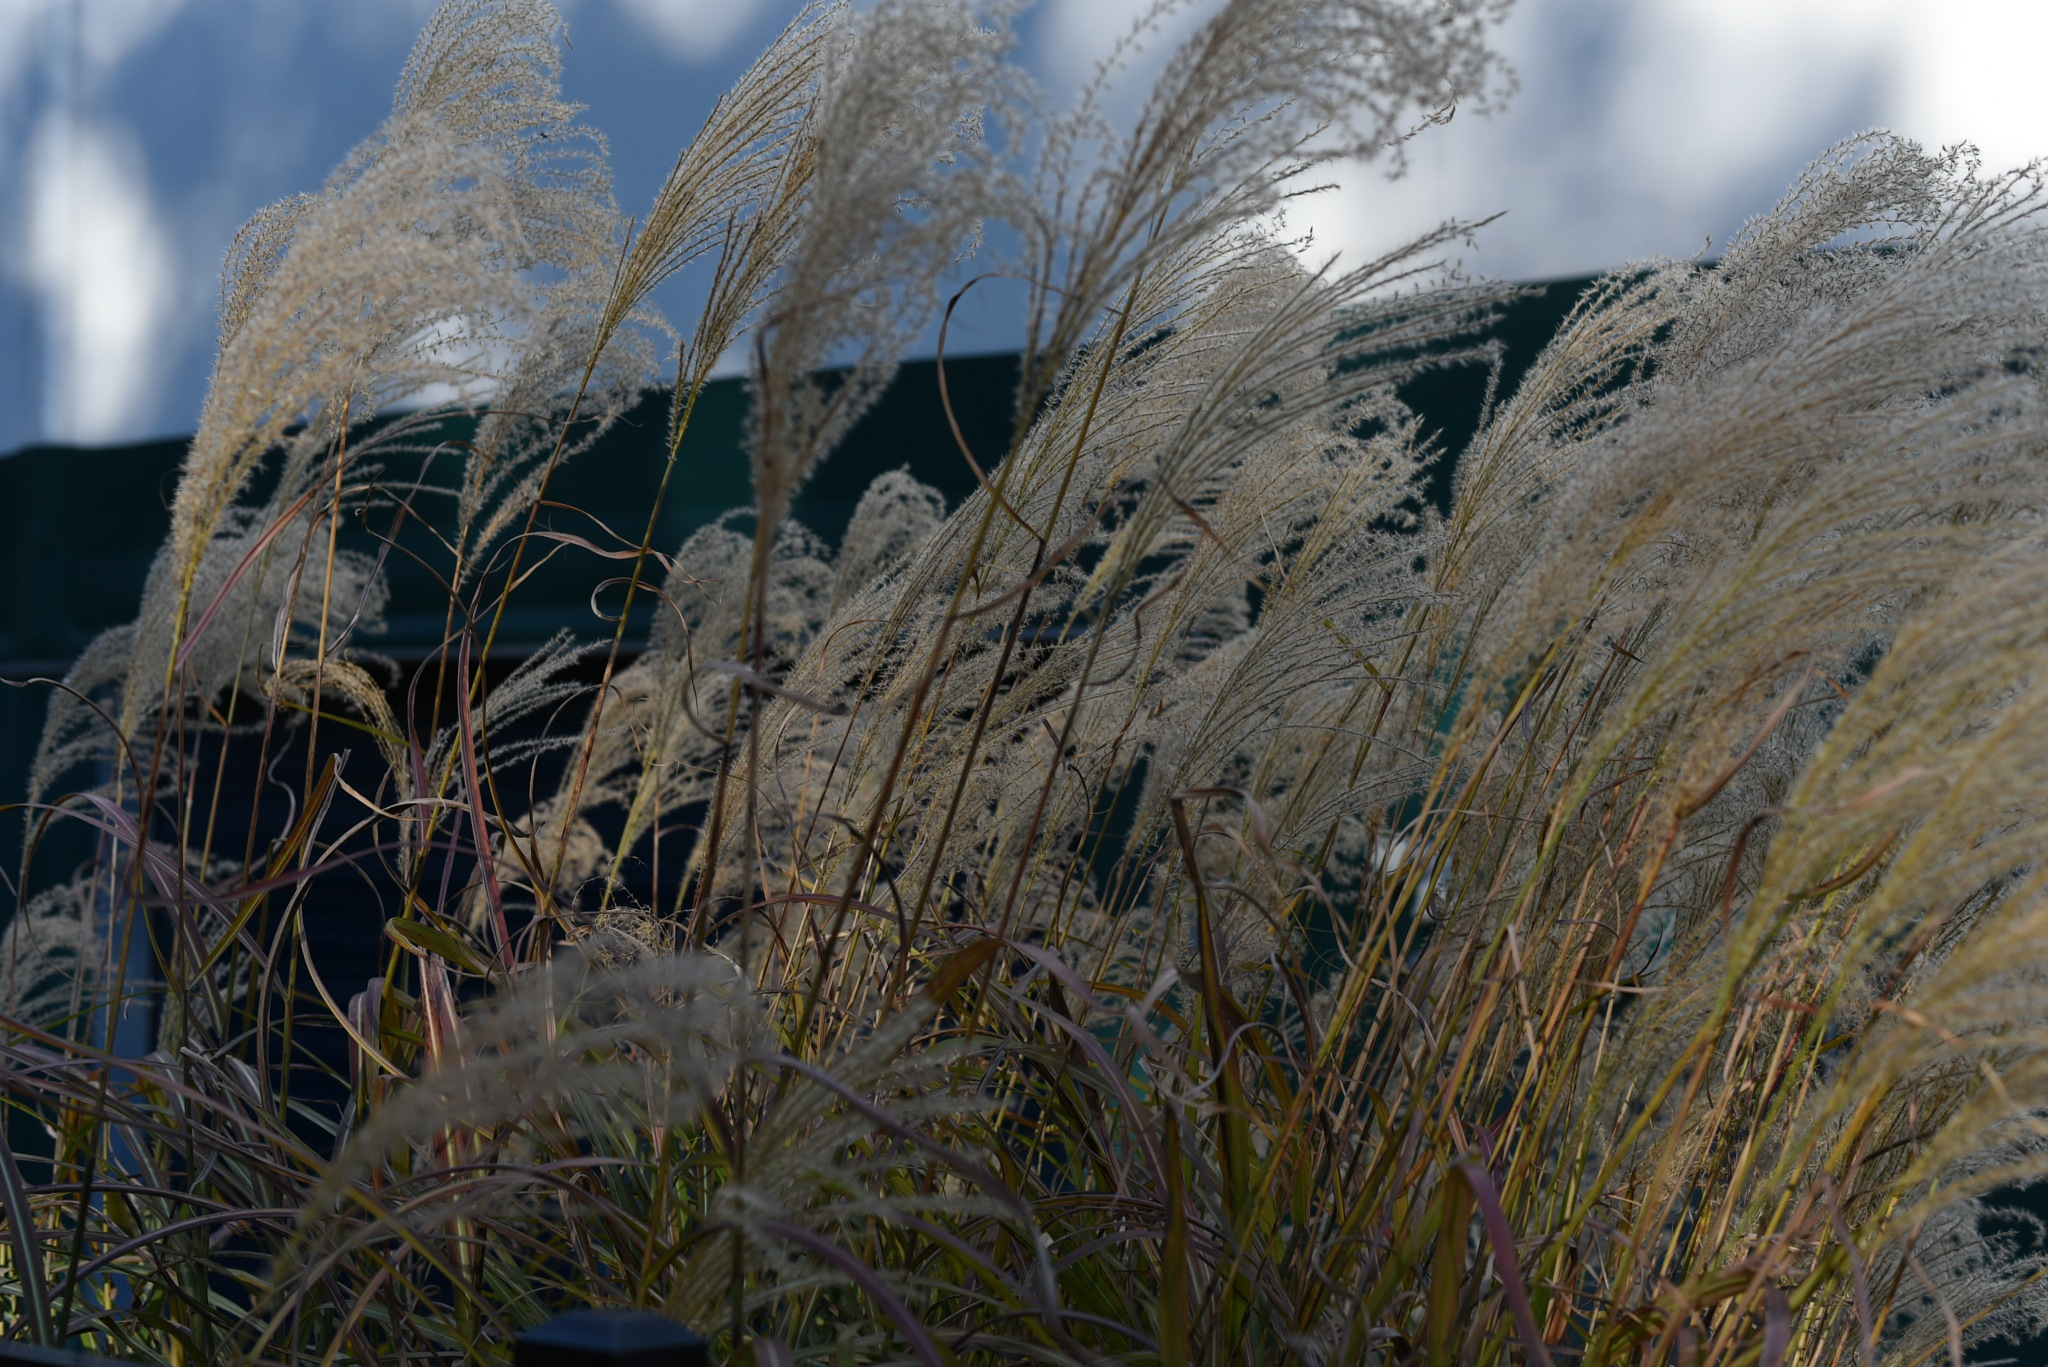 Photography Class - Brachytricha - Decorative grass by Vizzpat